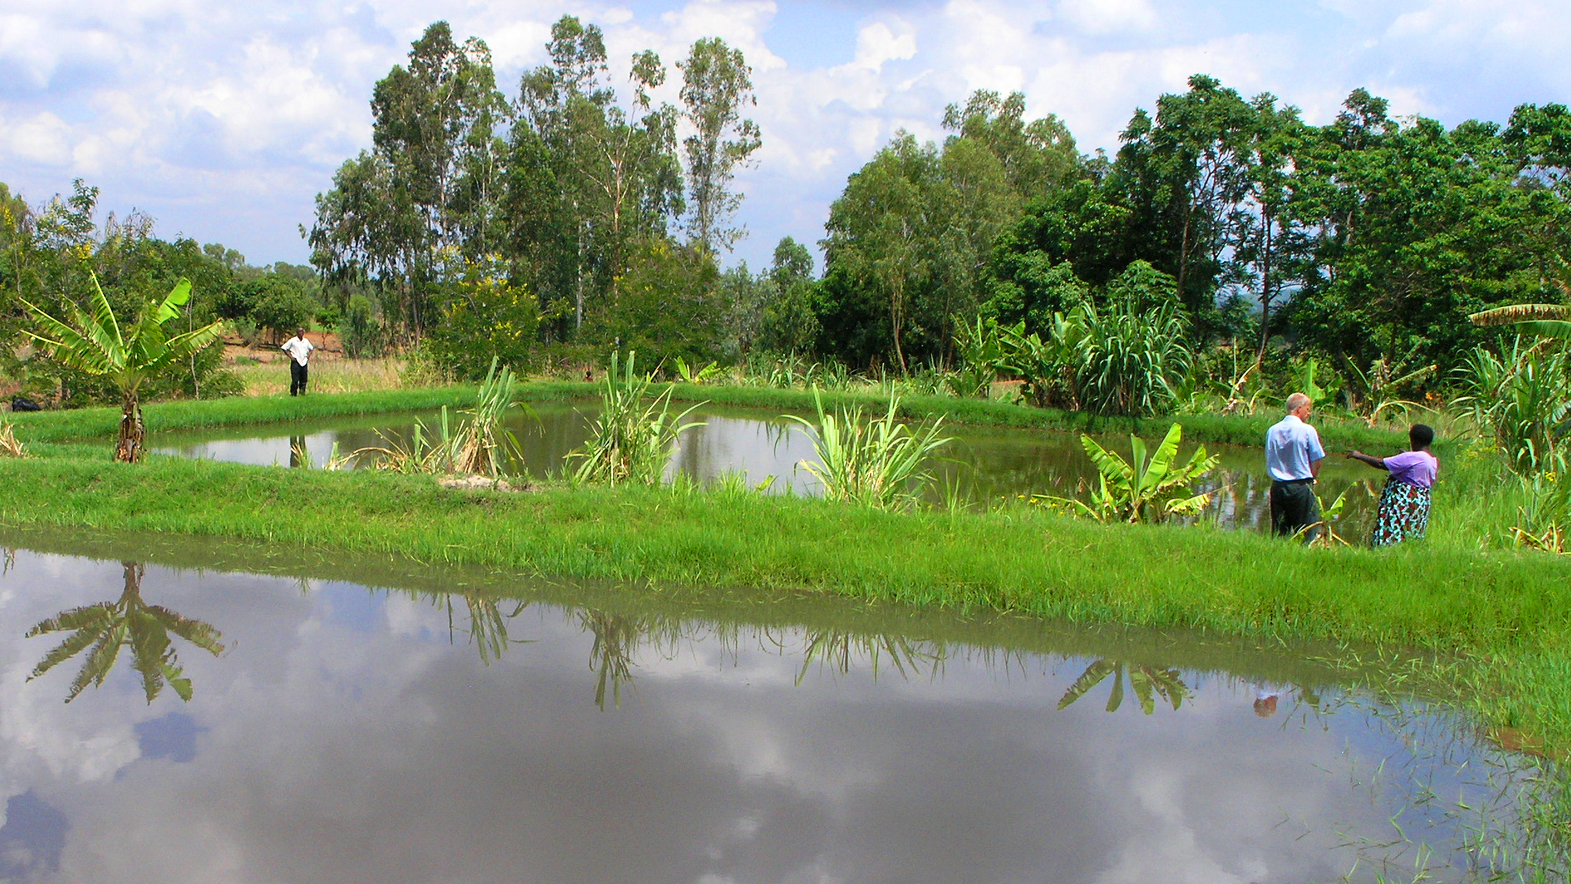 Fish farm next to crop fields